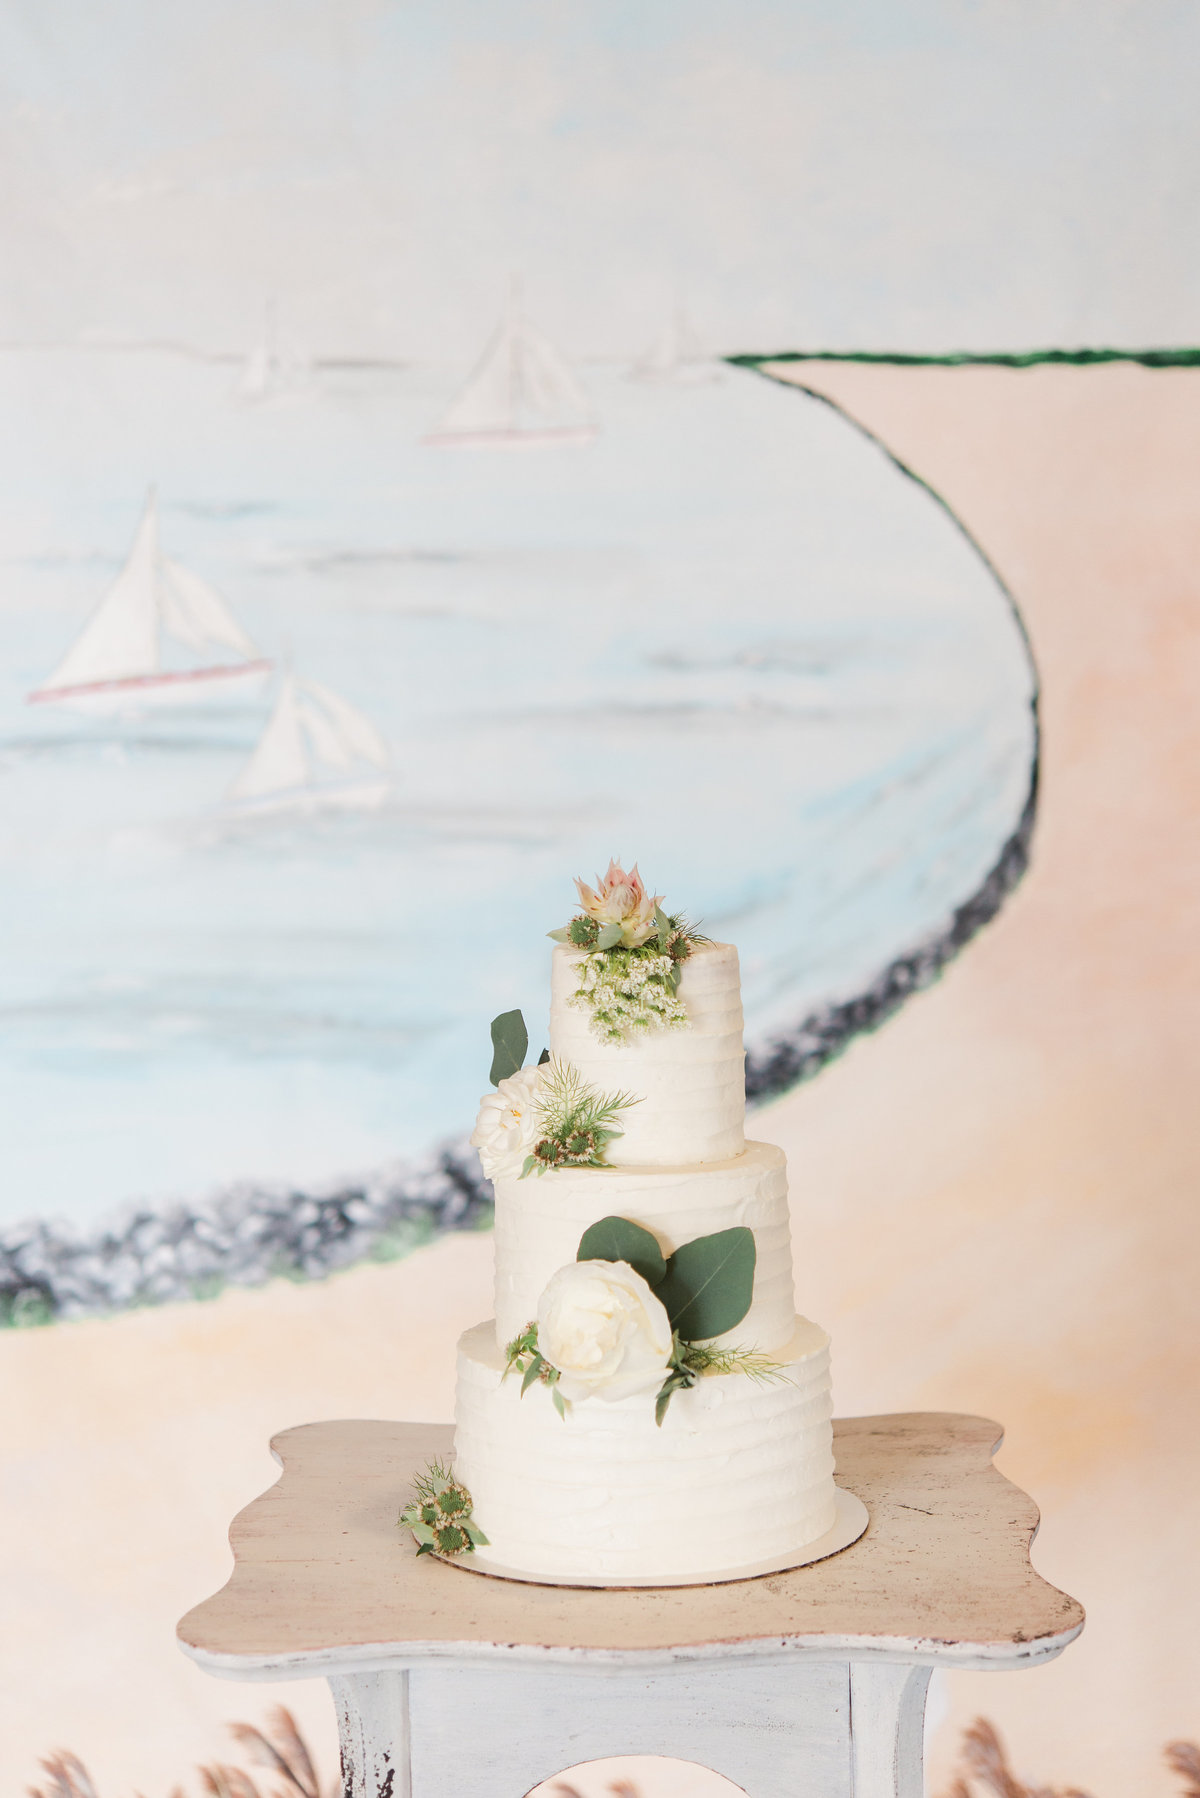 Cake in front of Chesapeake Bay inspired  wedding backdrop By Brittany Branson as featured in What's Up Wedding Magazine